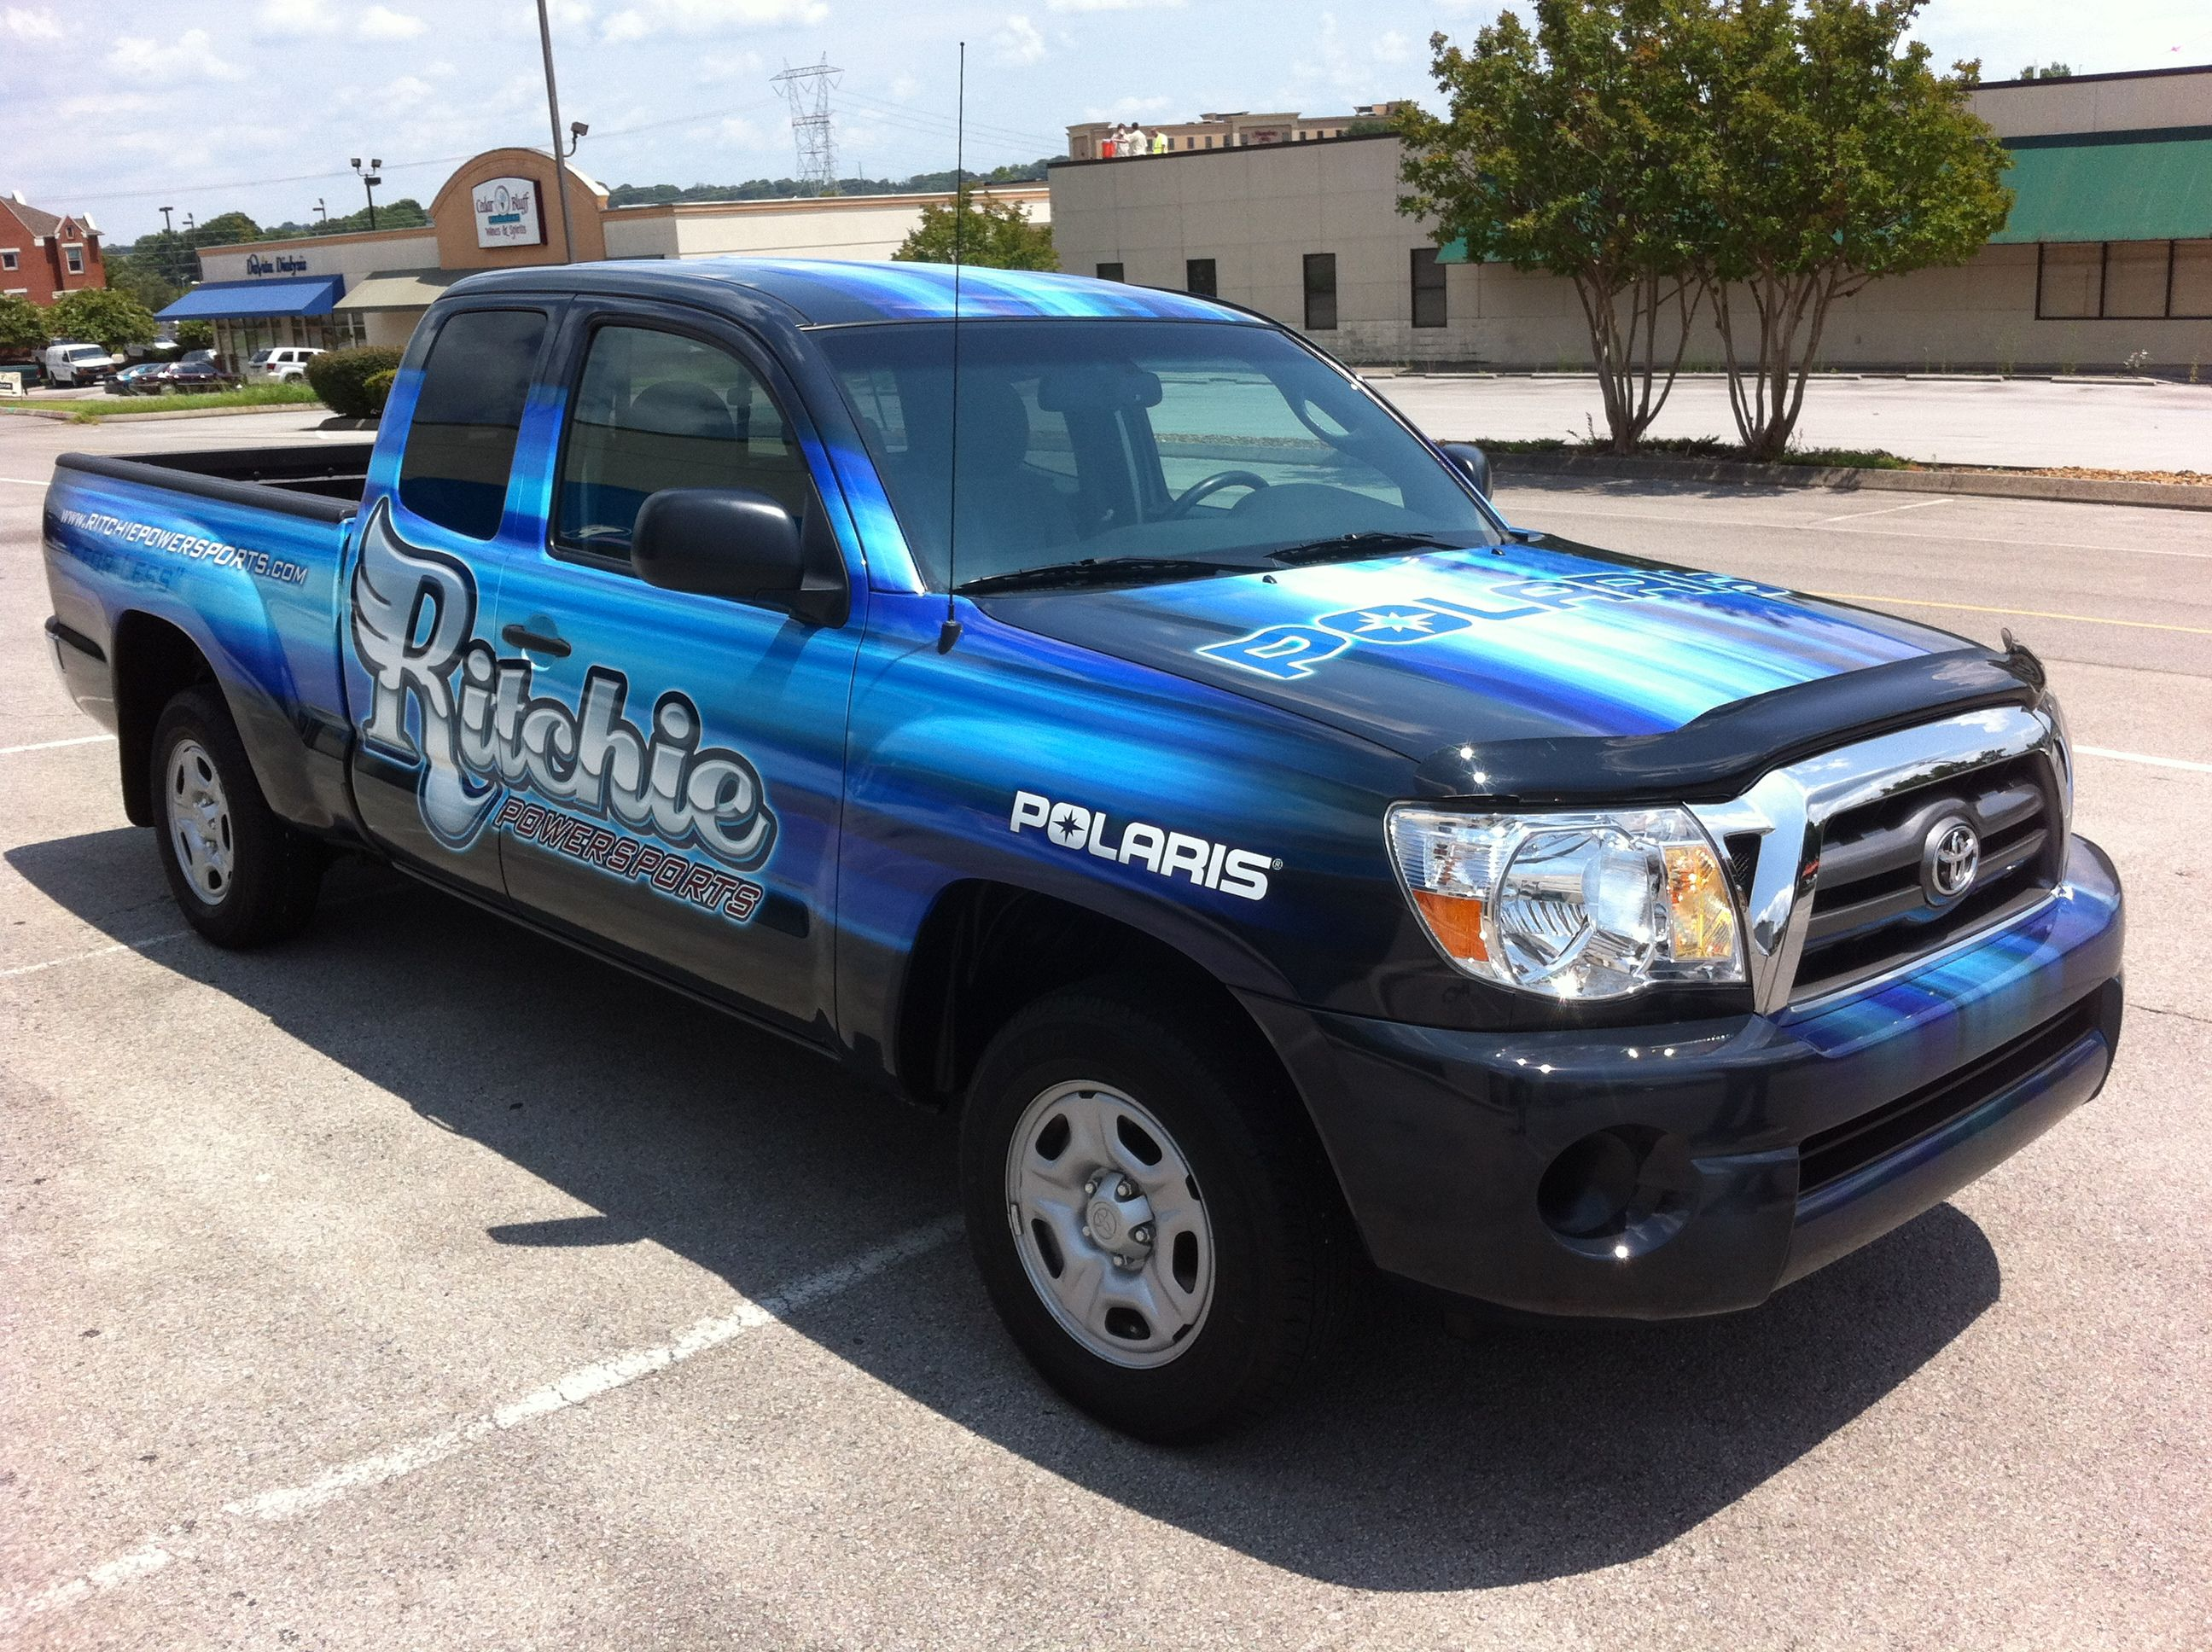 Ritchie Powersports Toyota Truck Wrap Knoxville TN